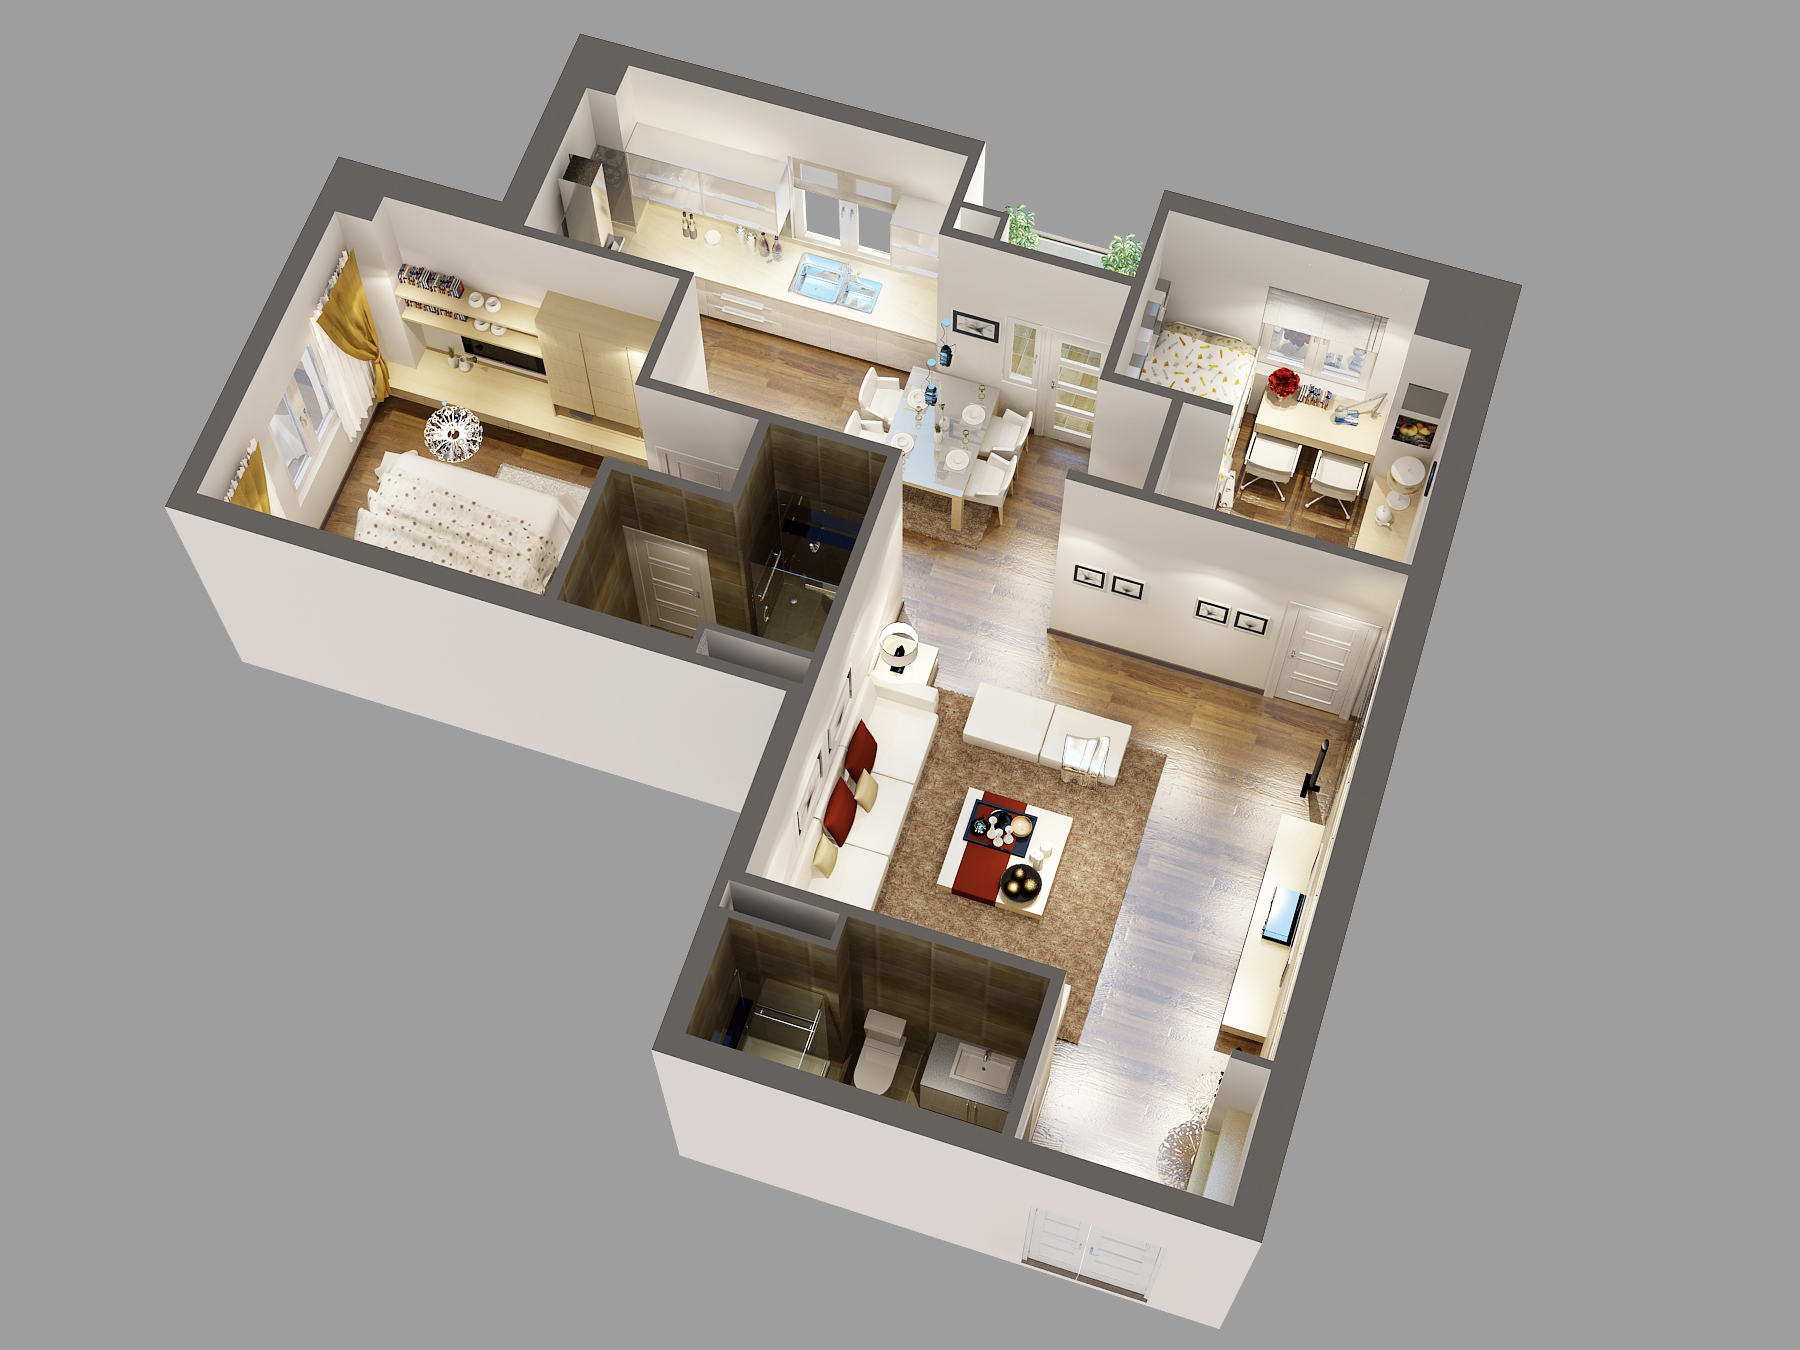 Three Bedroom Apartment Floor Plans Detailed House Cutaway 3d Model 3d Model Max Cgtrader Com